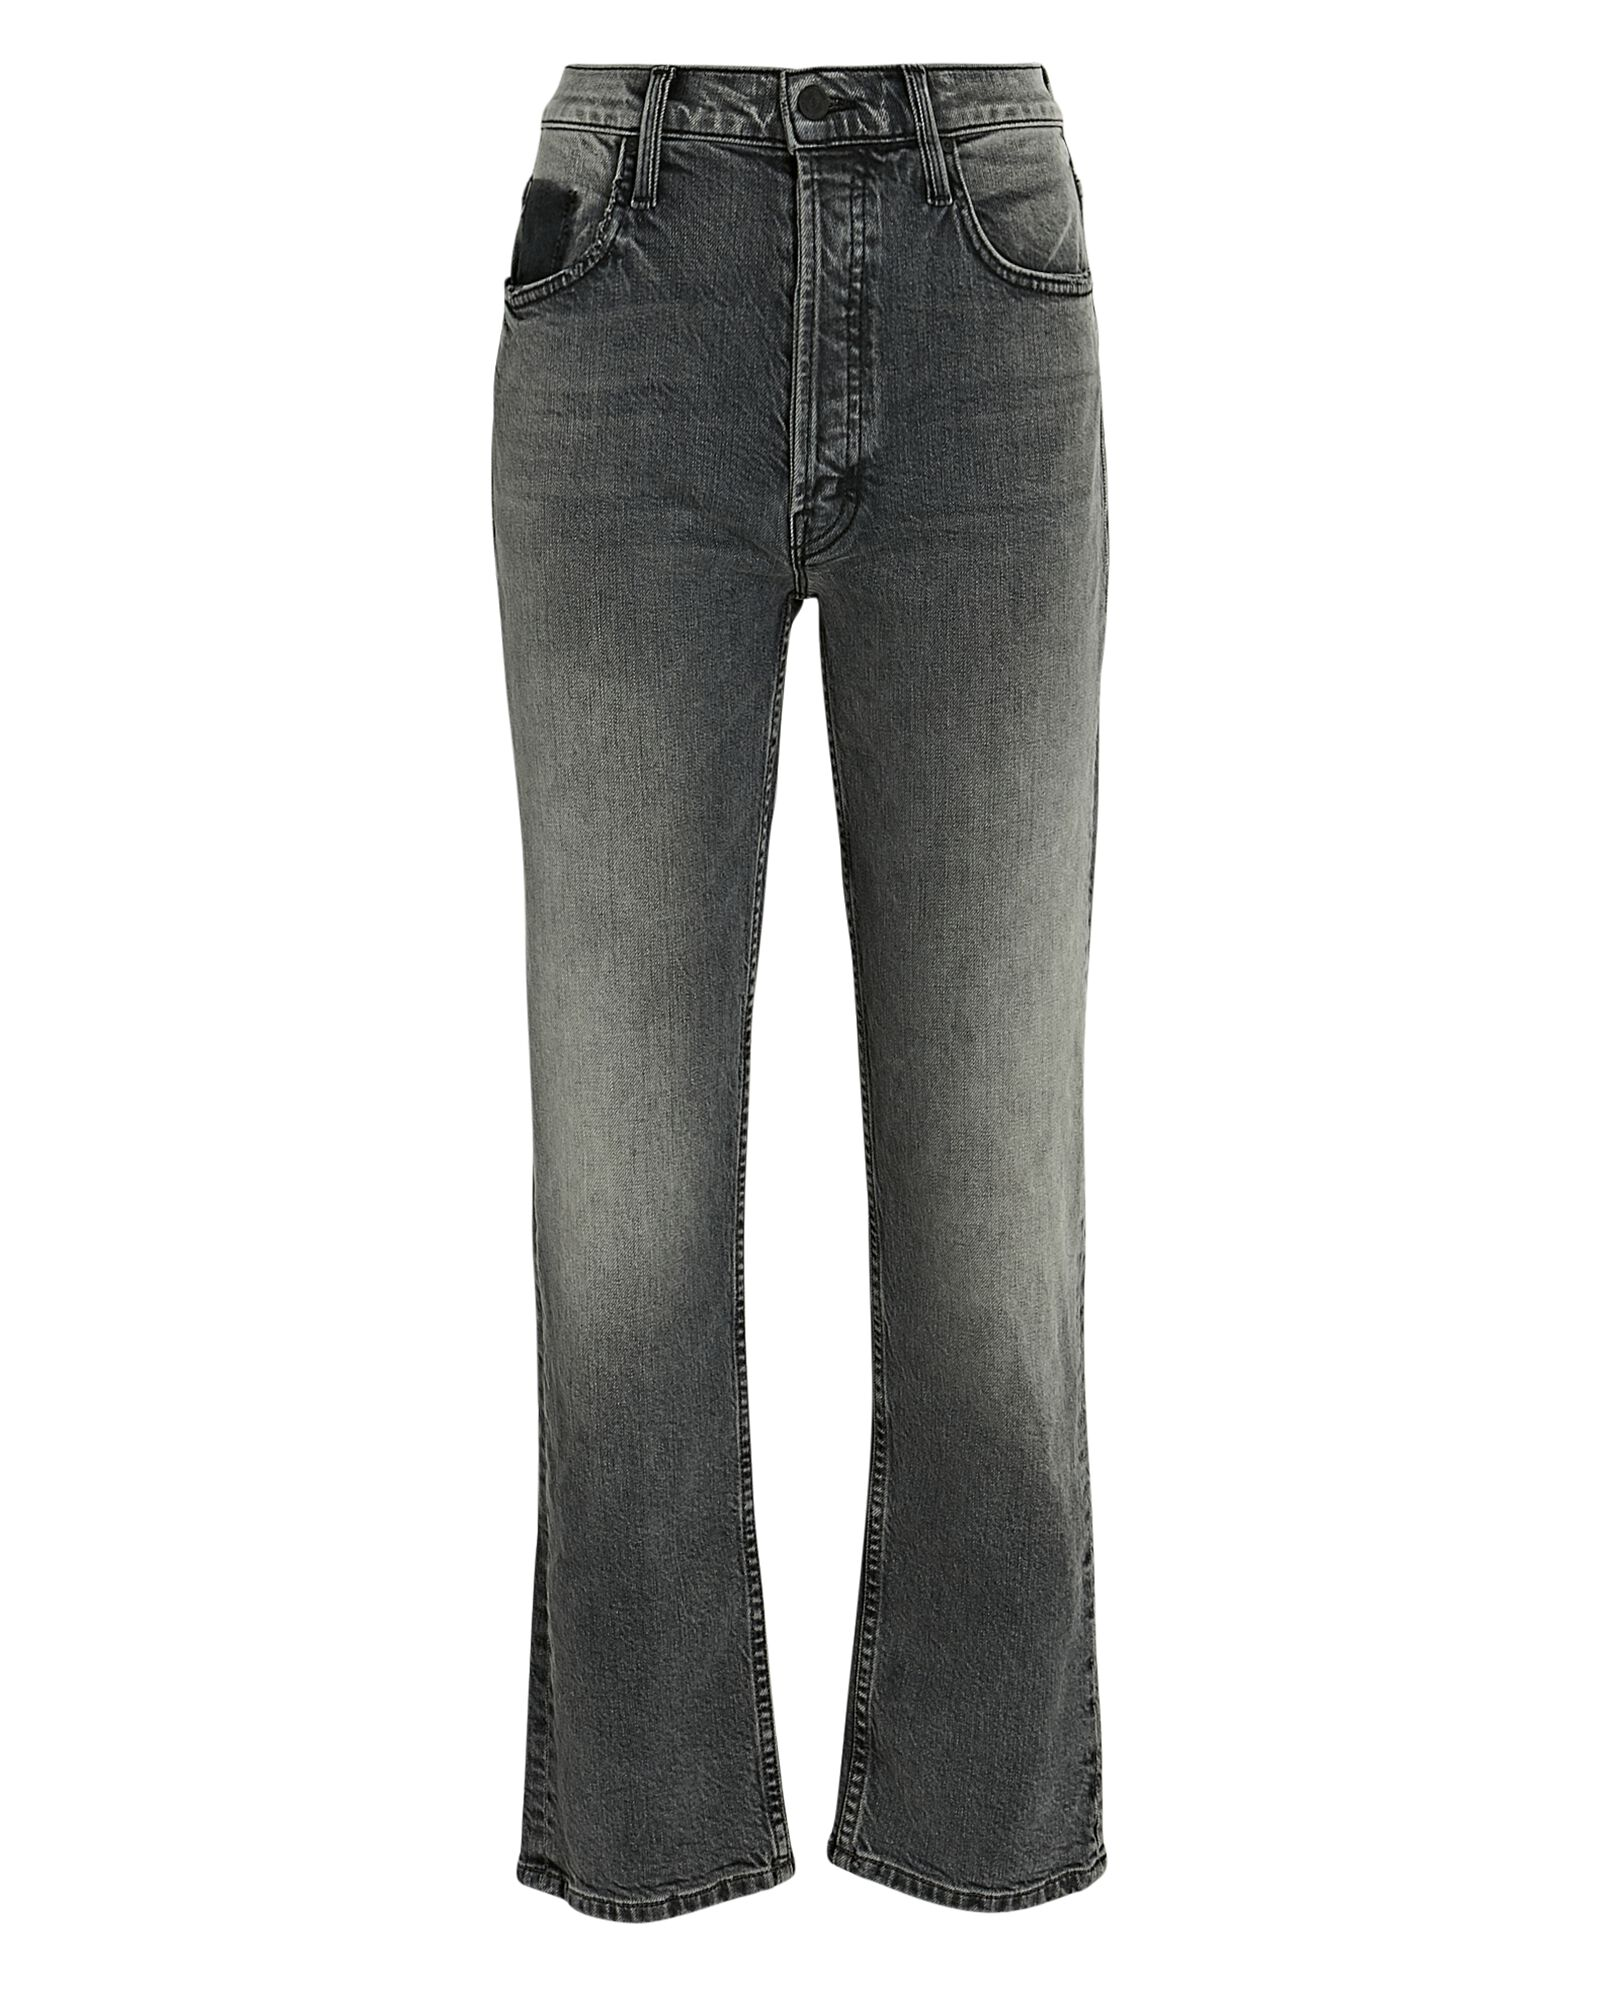 Tomcat Cropped Jeans, GREY, hi-res